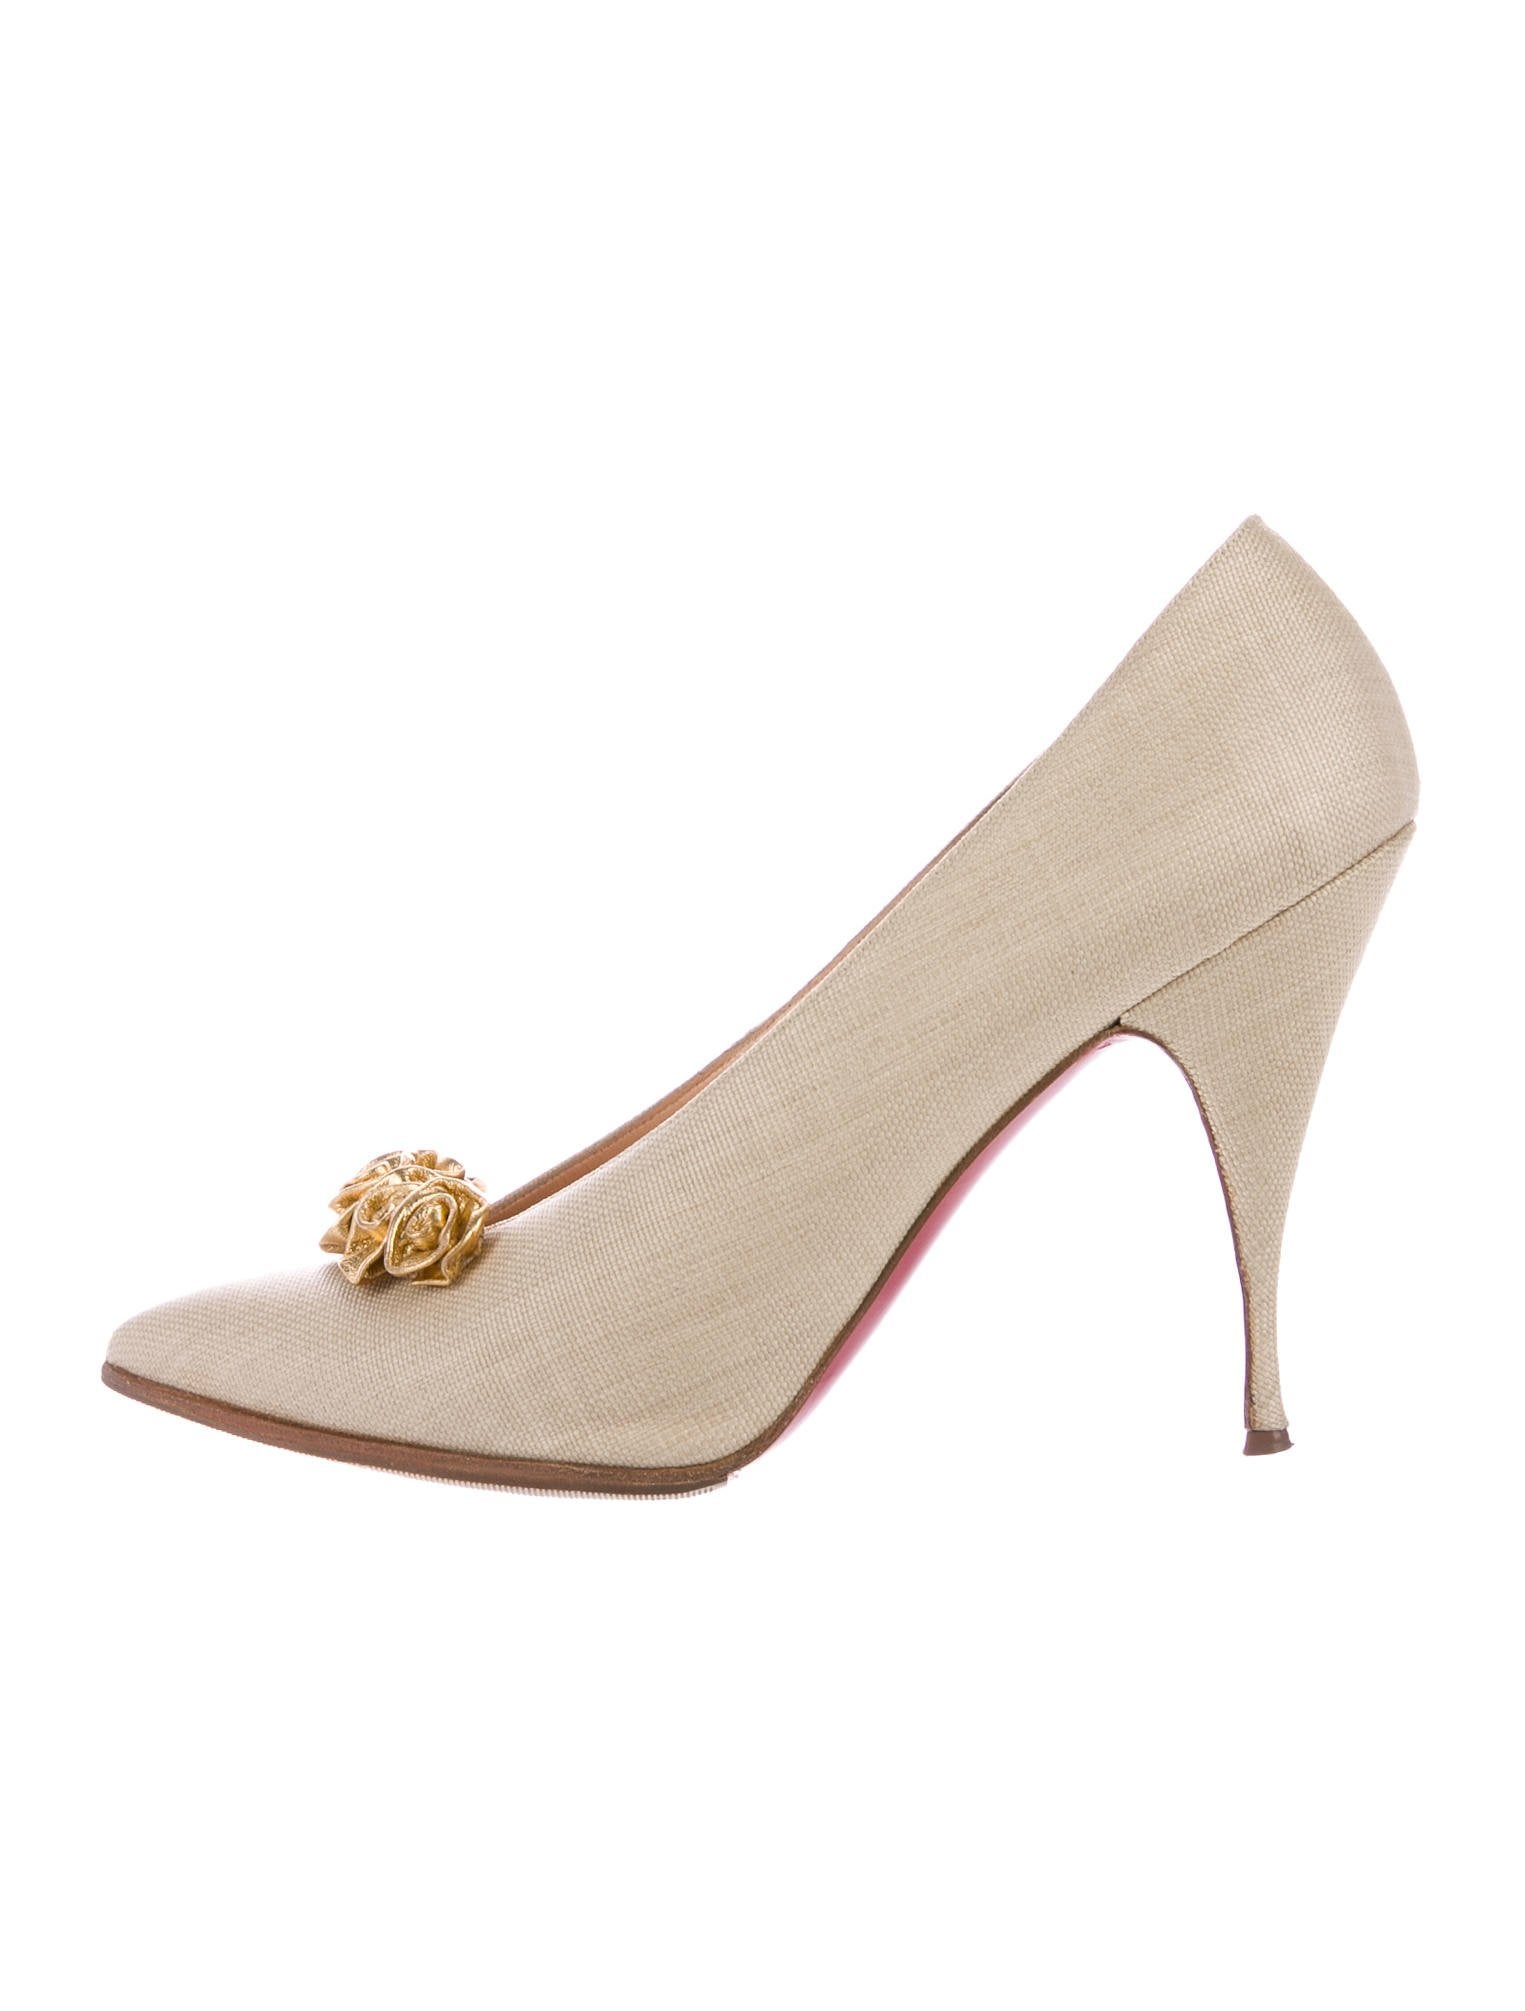 Christian Louboutin Raffia Pointed-Toe Pumps cheap sale Manchester 8XM0wi6w